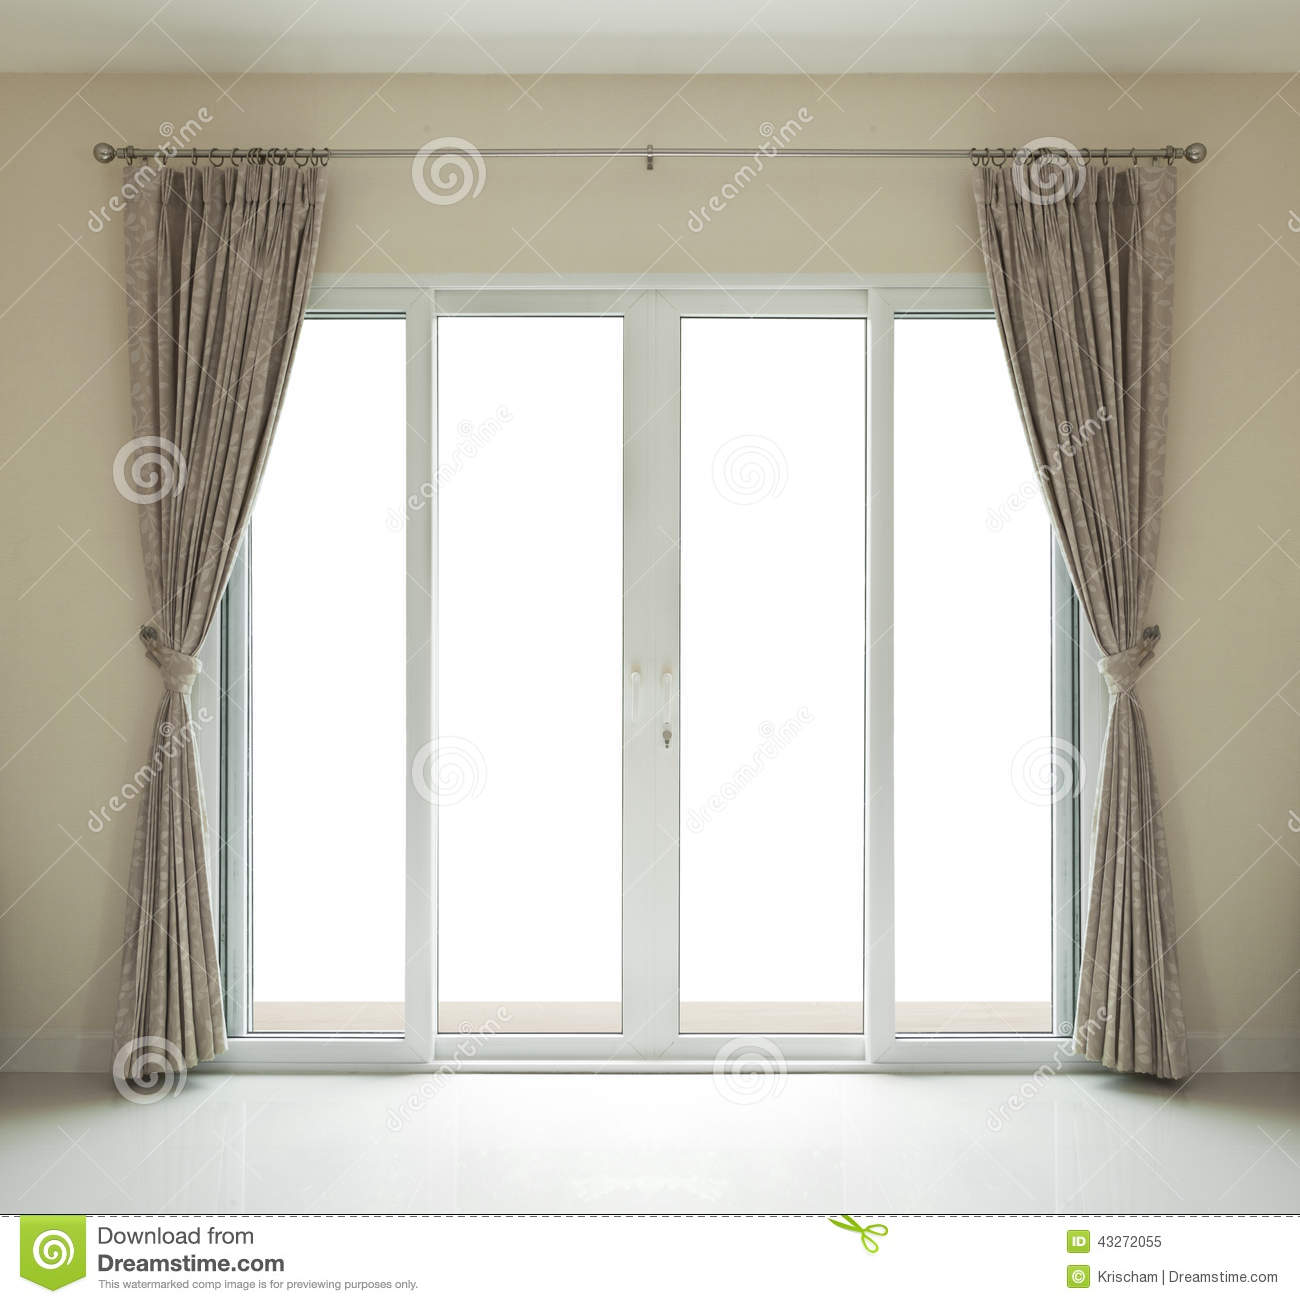 how to open closed window